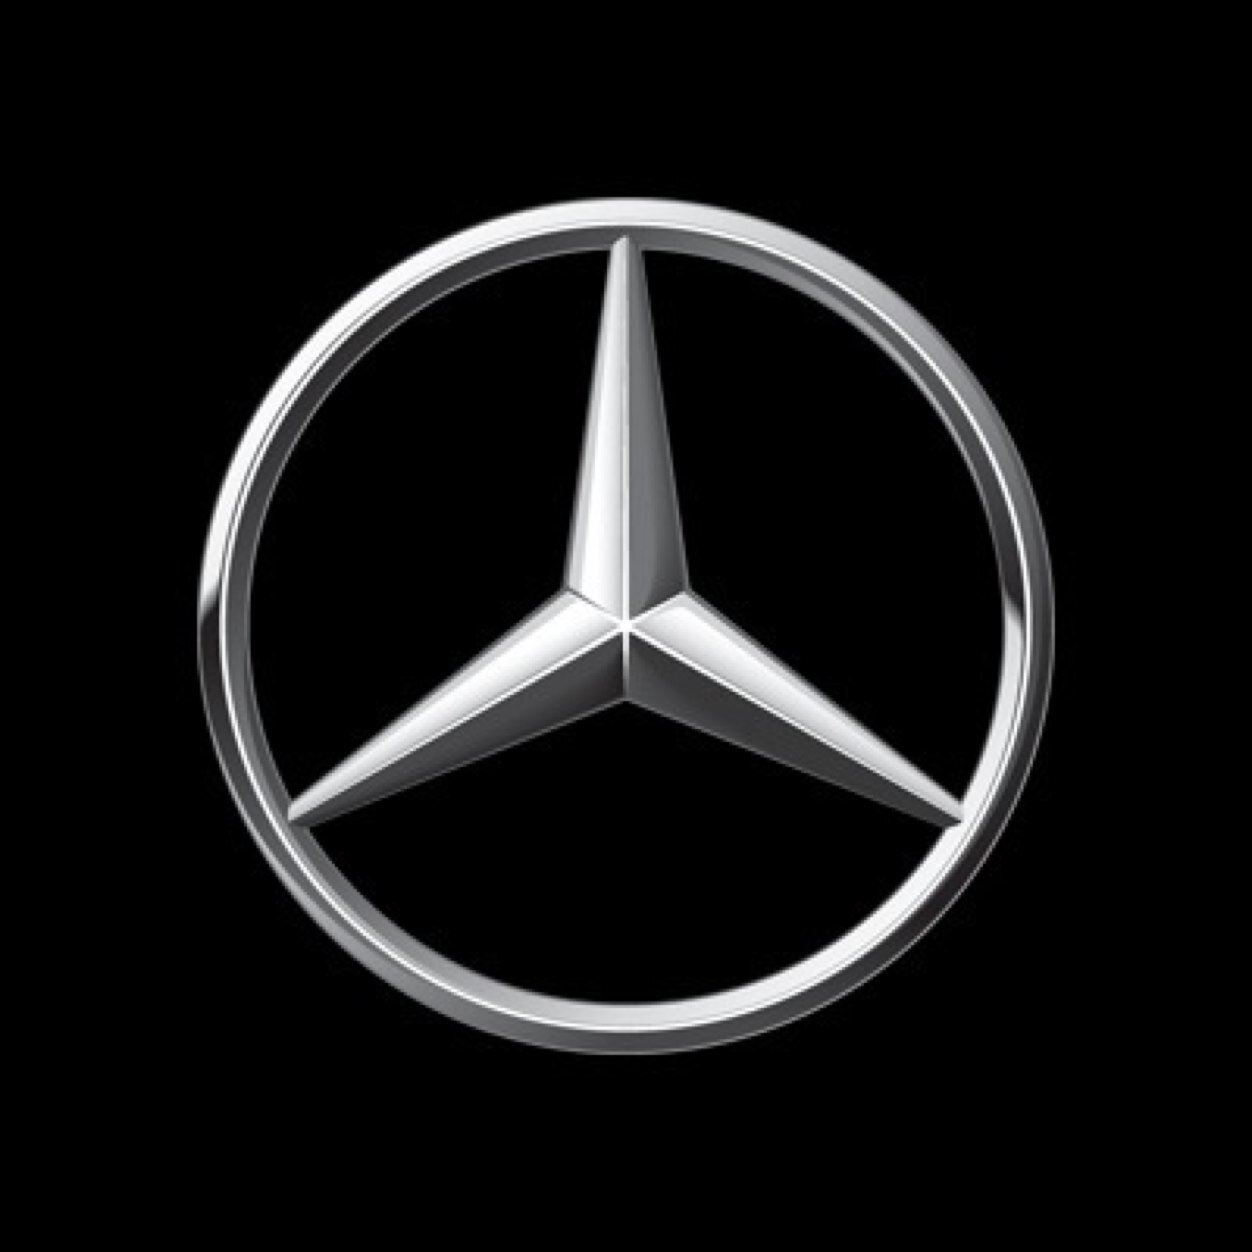 Mercedes benz mbenzstcharles twitter for Mercedes benz twitter